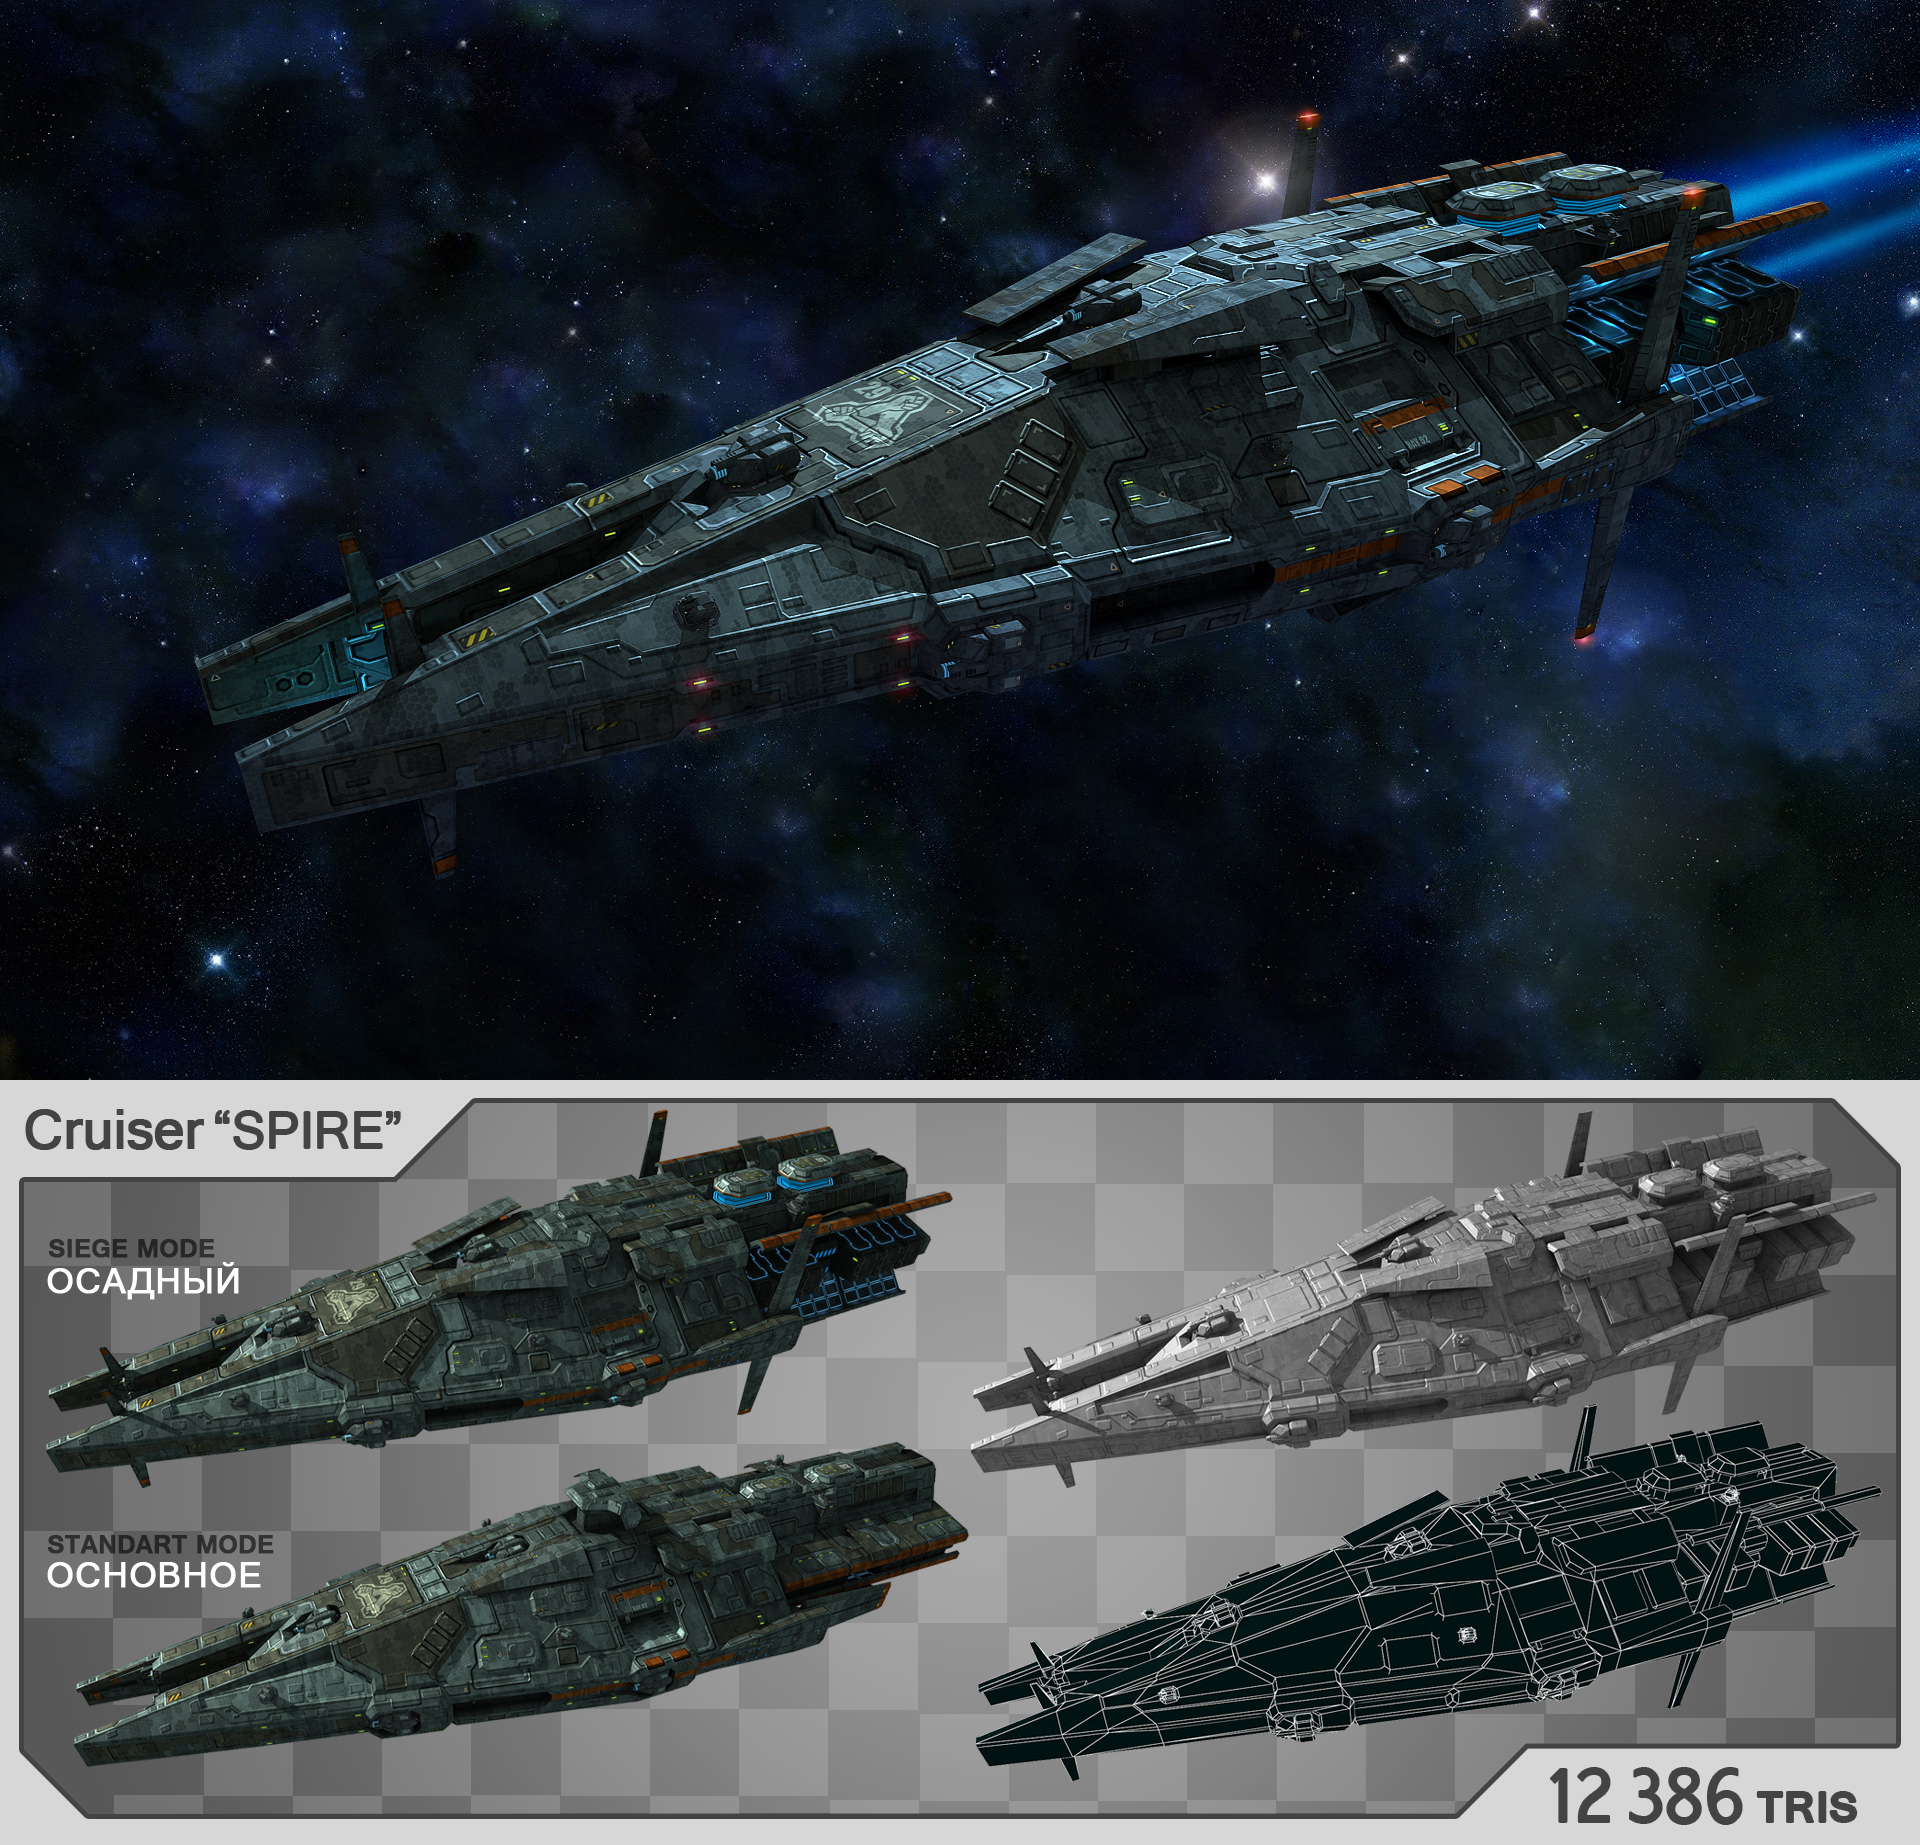 Assault cruiser SPIRE by NovA29R